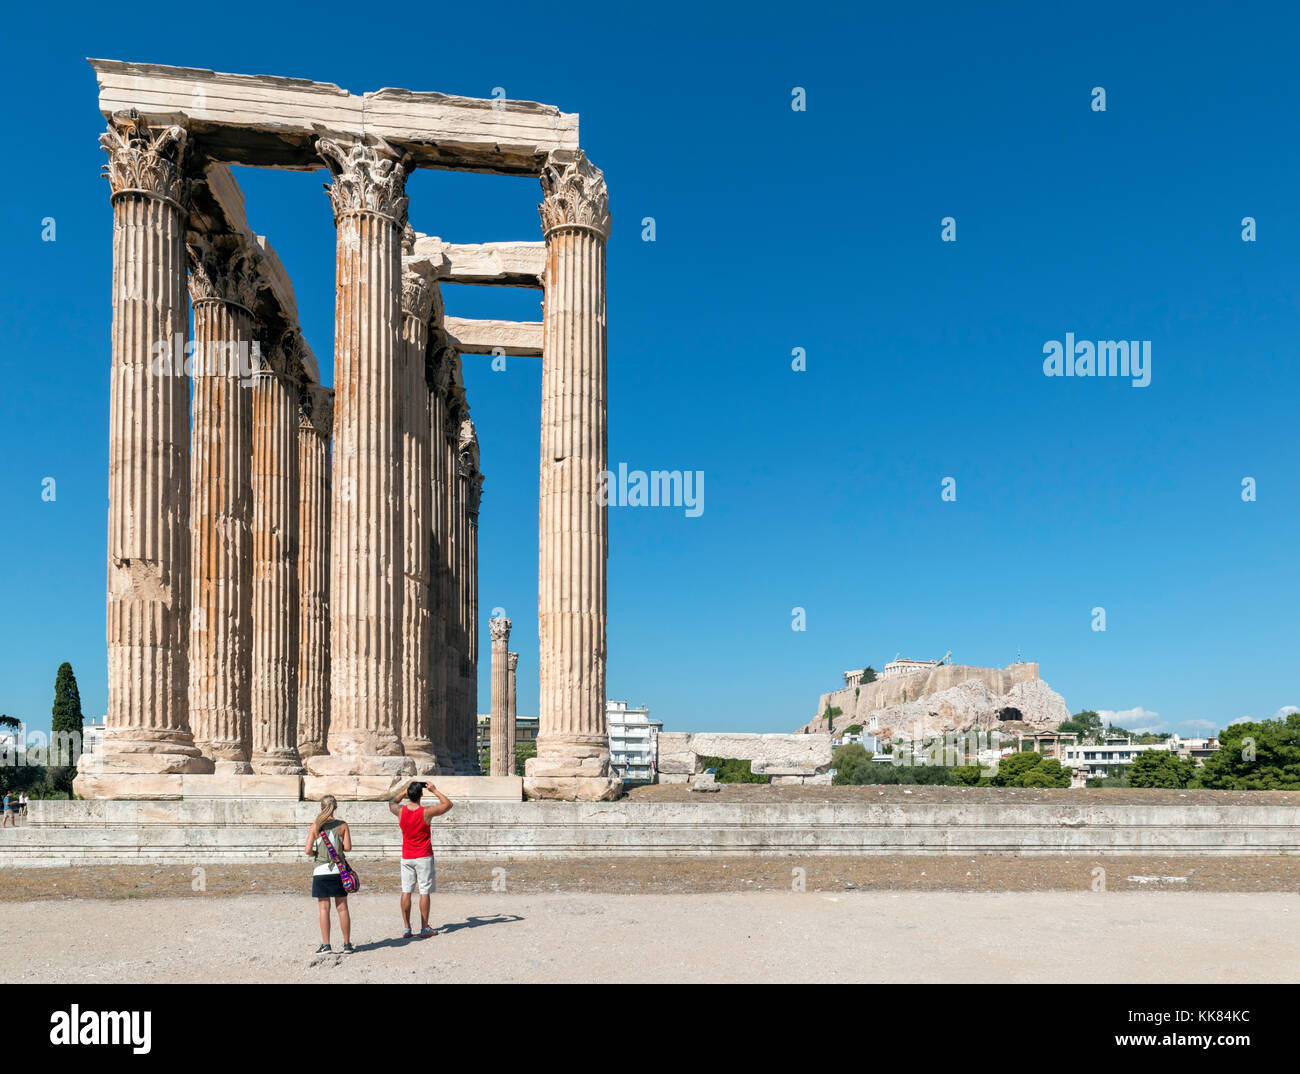 Couple in front of the Temple of Olympian Zeus (Olympeion) with the Acropolis in the background, Athens, Greece - Stock Image